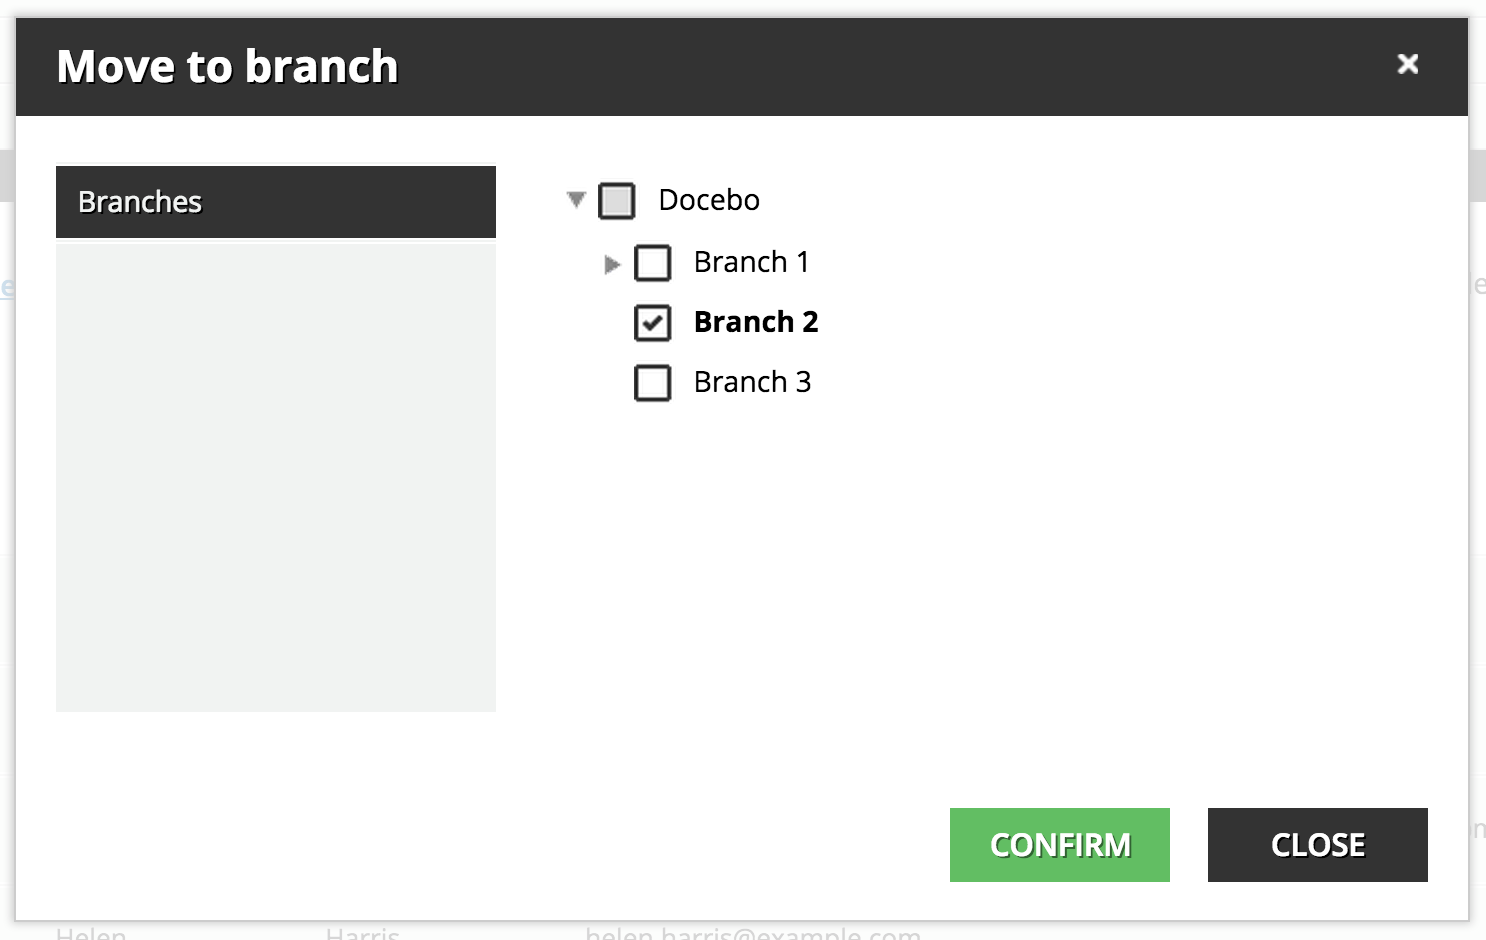 organize users Move to branch - CONFIRM